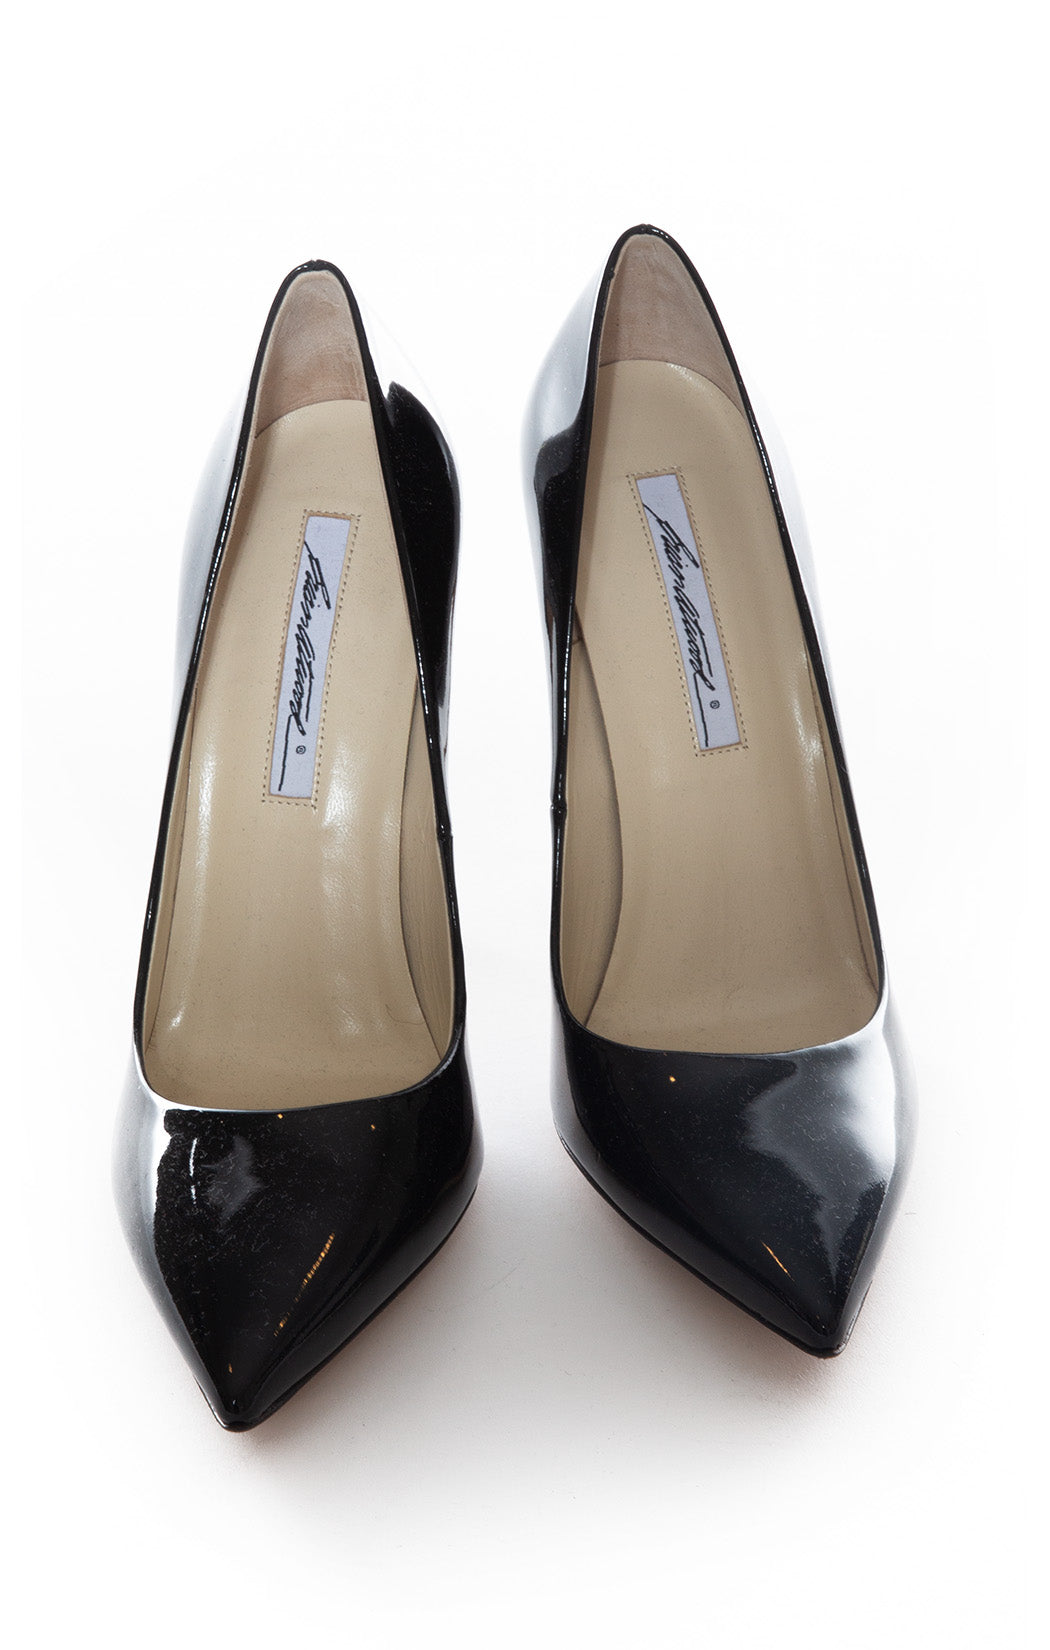 Front view of BRIAN ATWOOD Pumps Size: 9